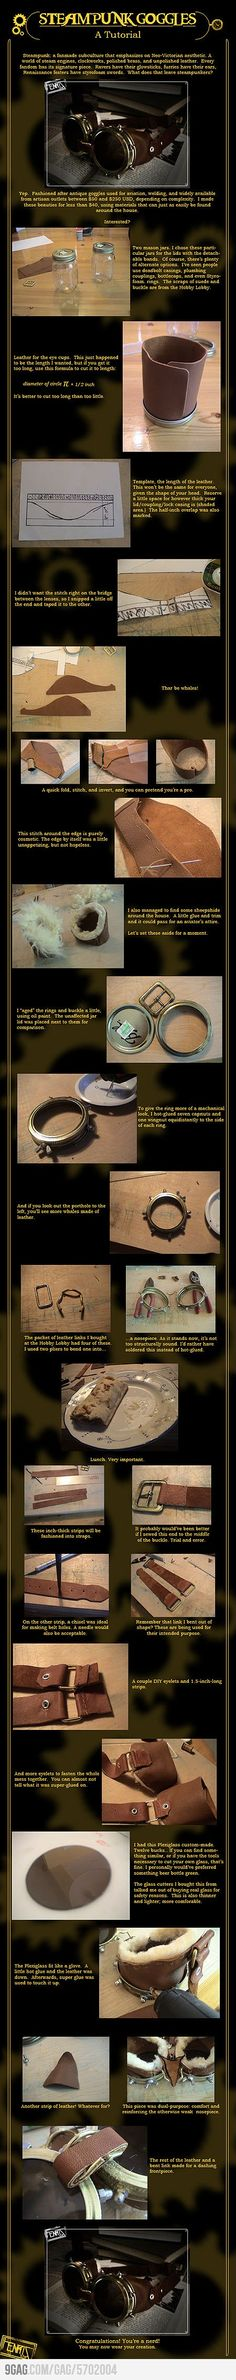 make your own Victorian steam punk goggles